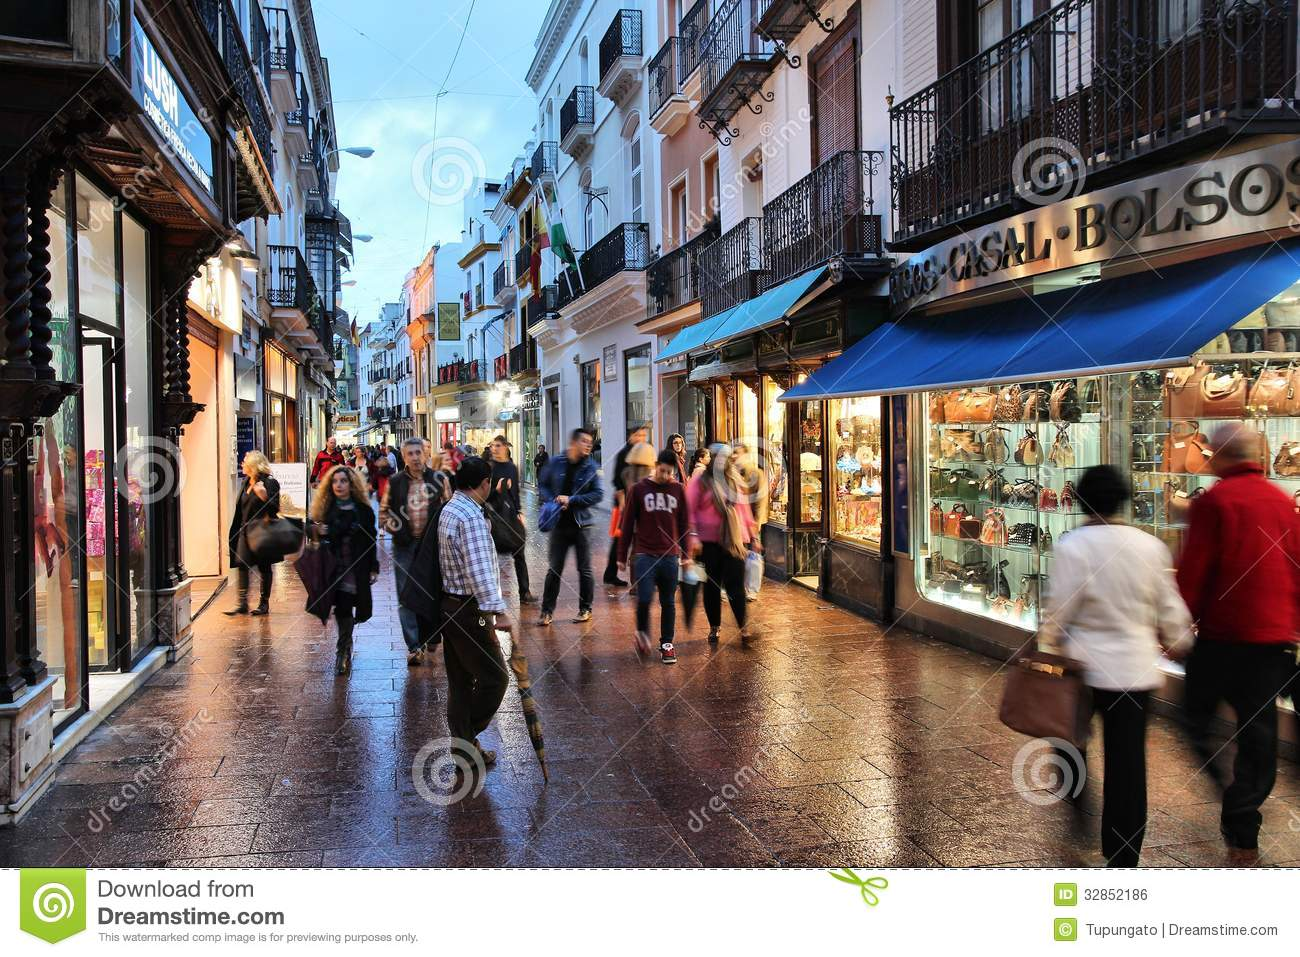 ... the 4th largest city in Spain and the largest in region of Andalusia